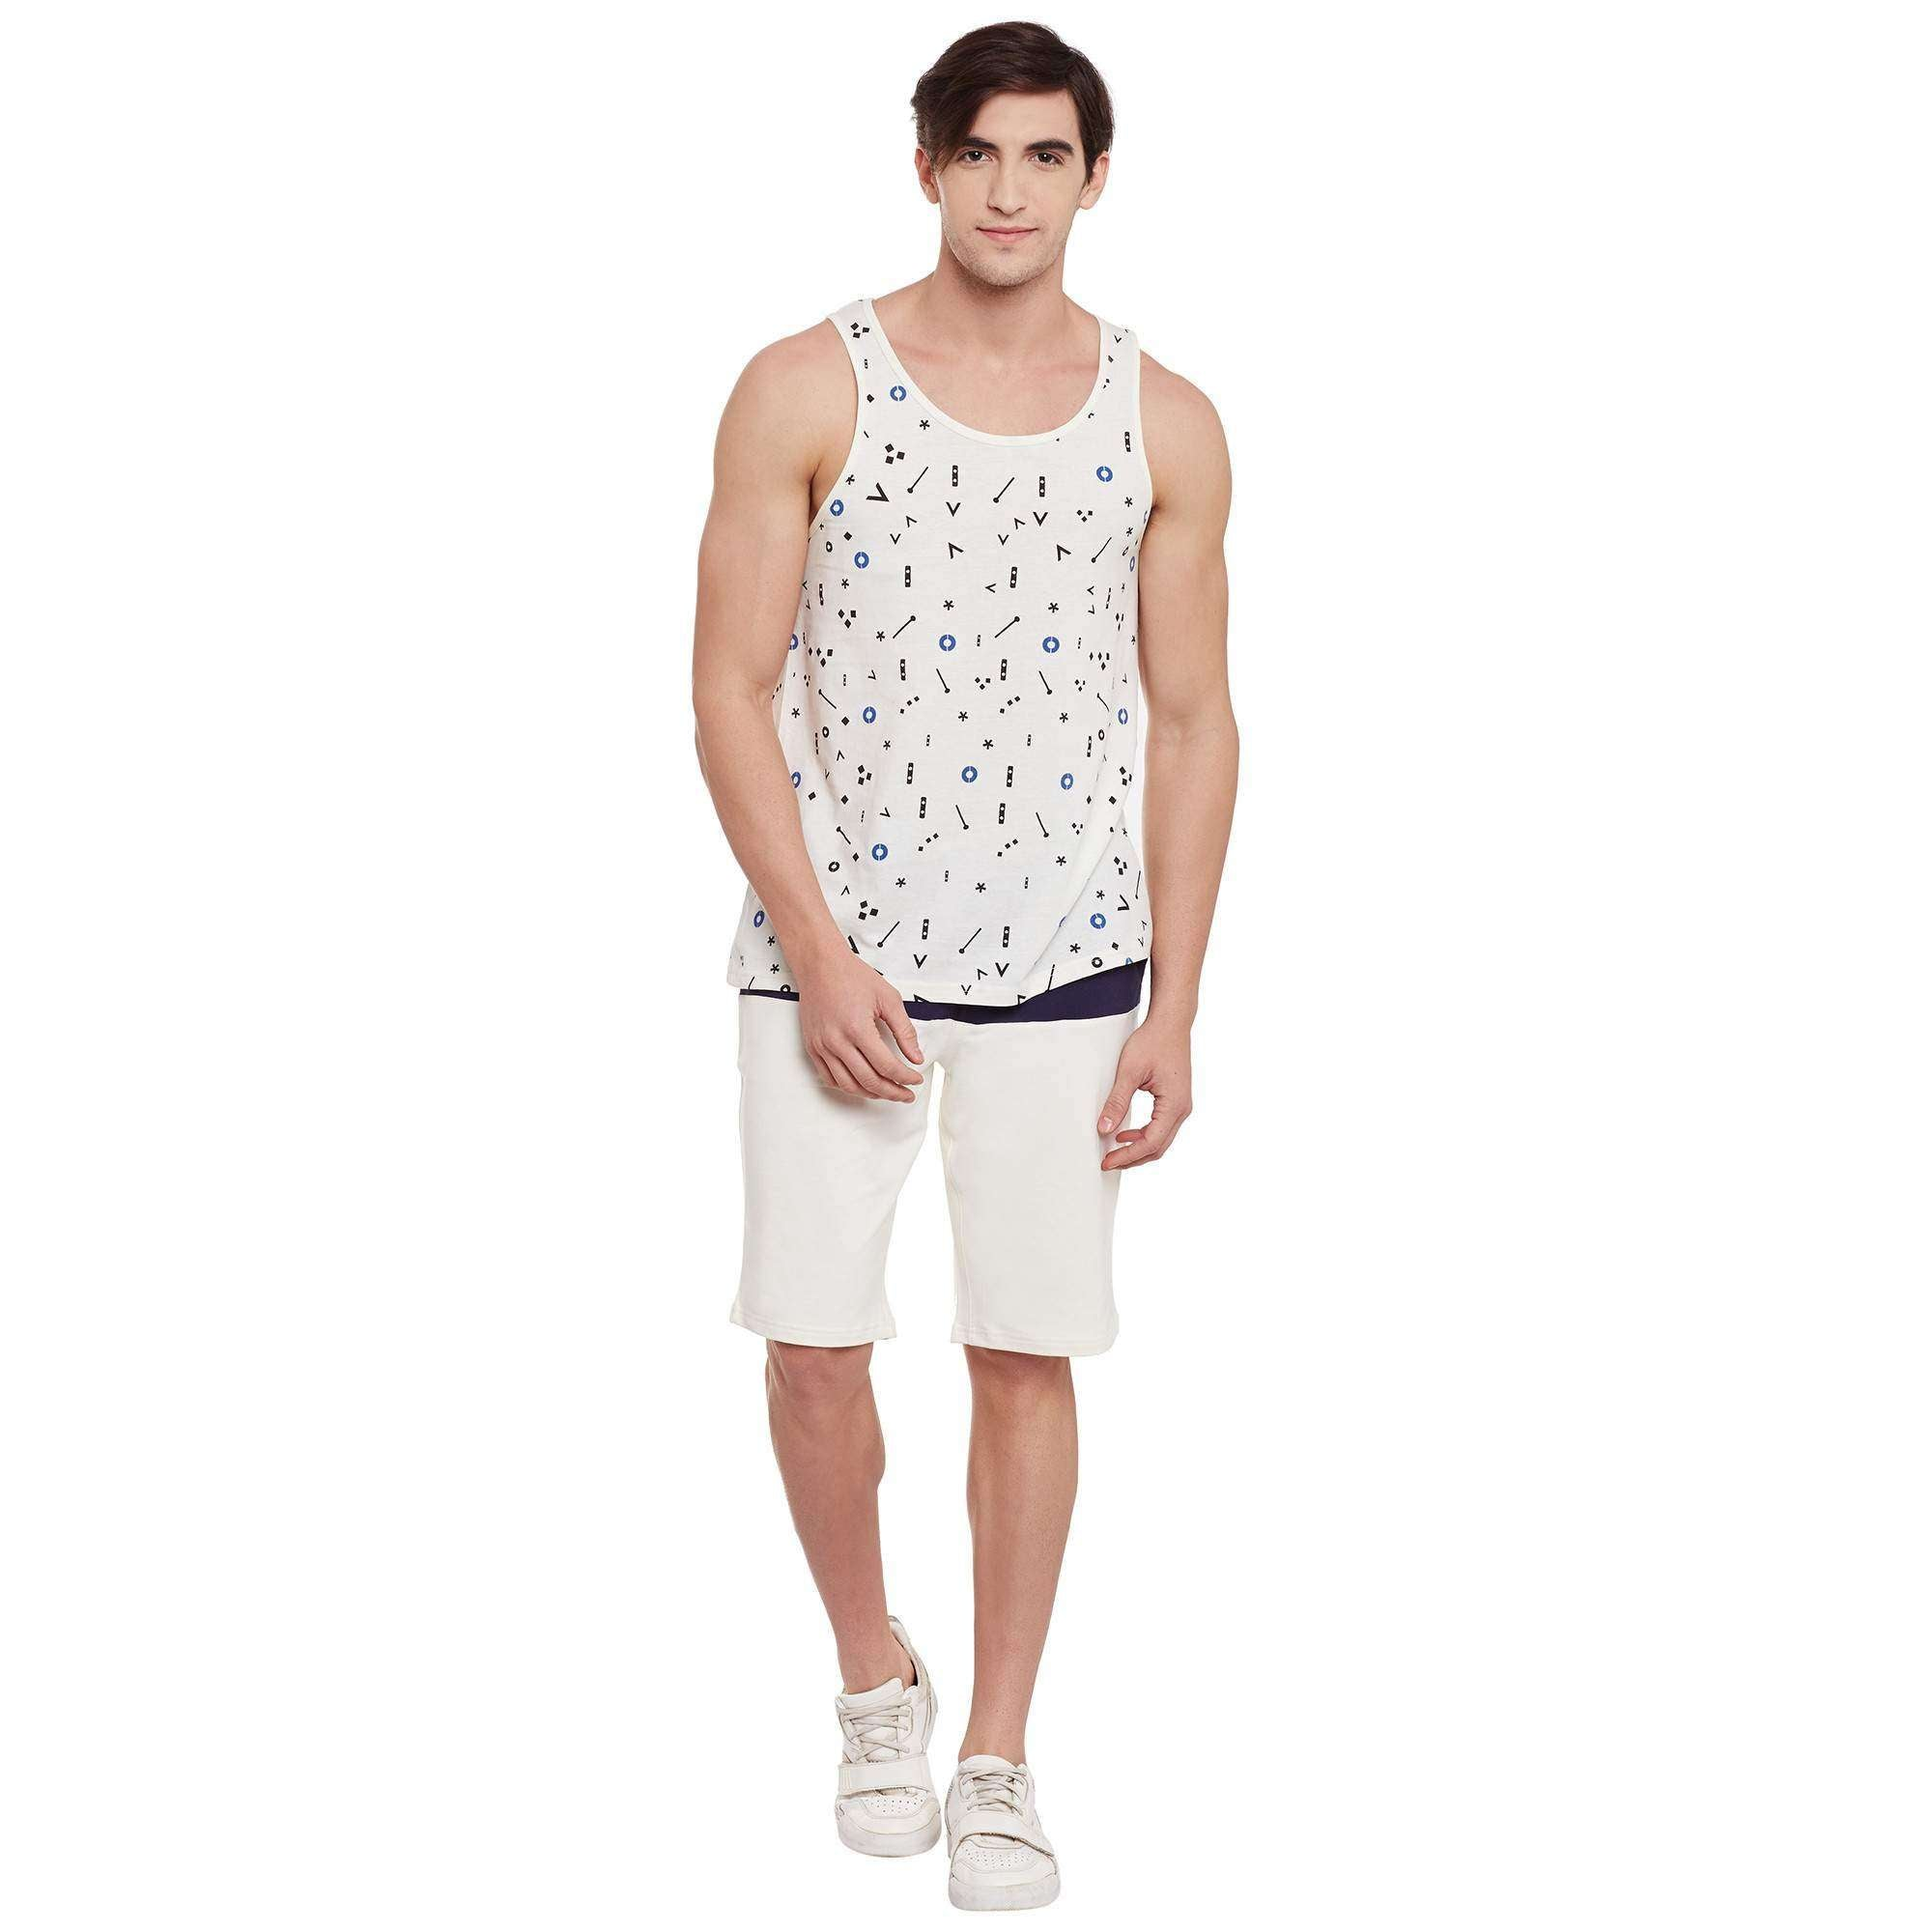 Atorse Mens Sando with Musical Note Printed Allover White